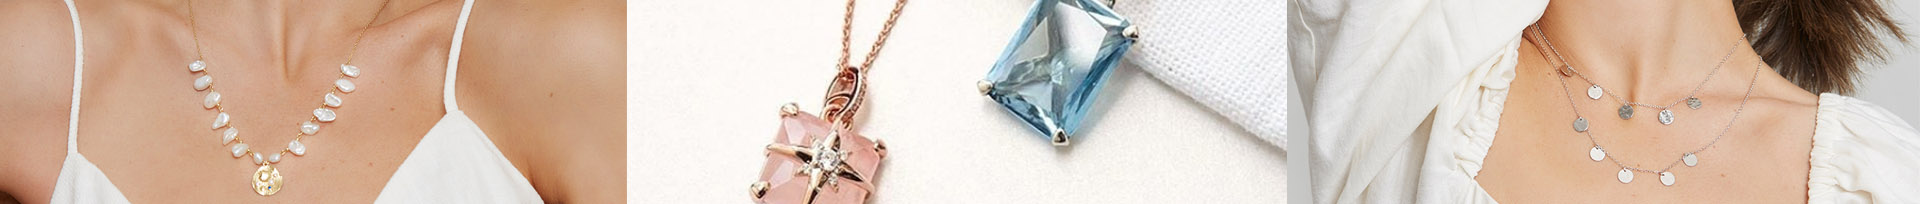 necklaces-category-banner1.jpg